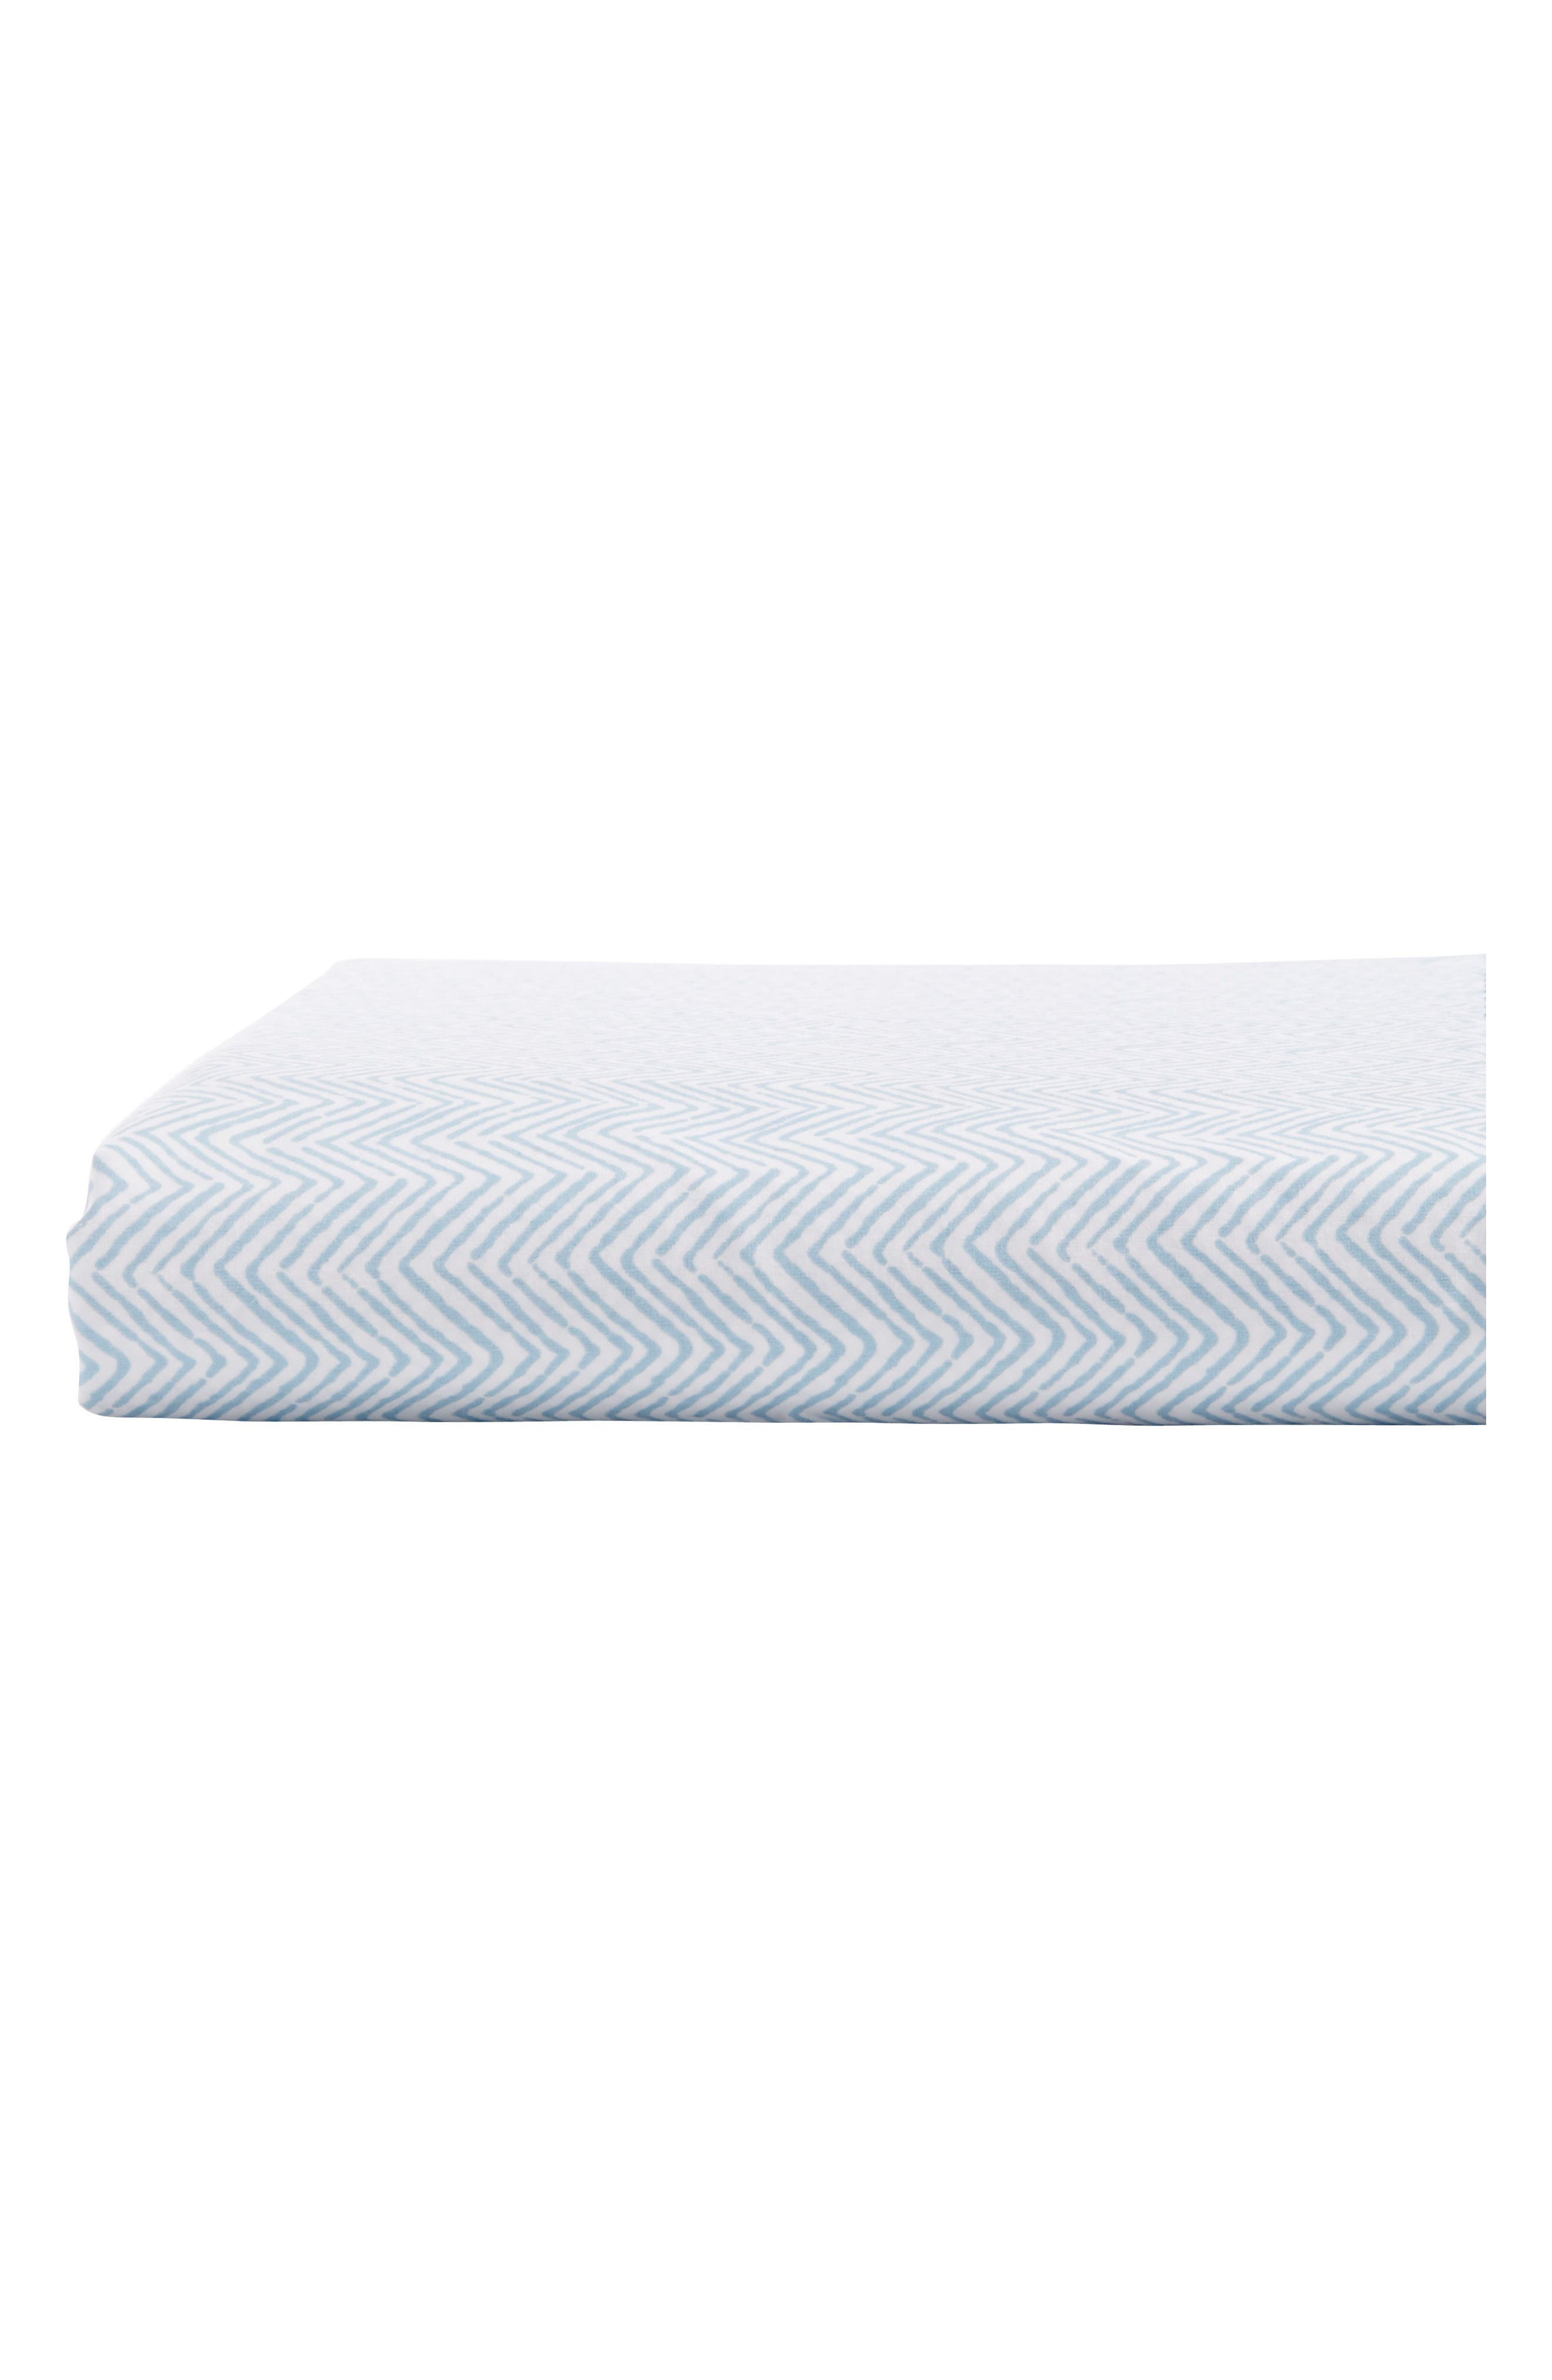 Chevron 400 Thread Count Fitted Sheet,                         Main,                         color, Light Indigo White